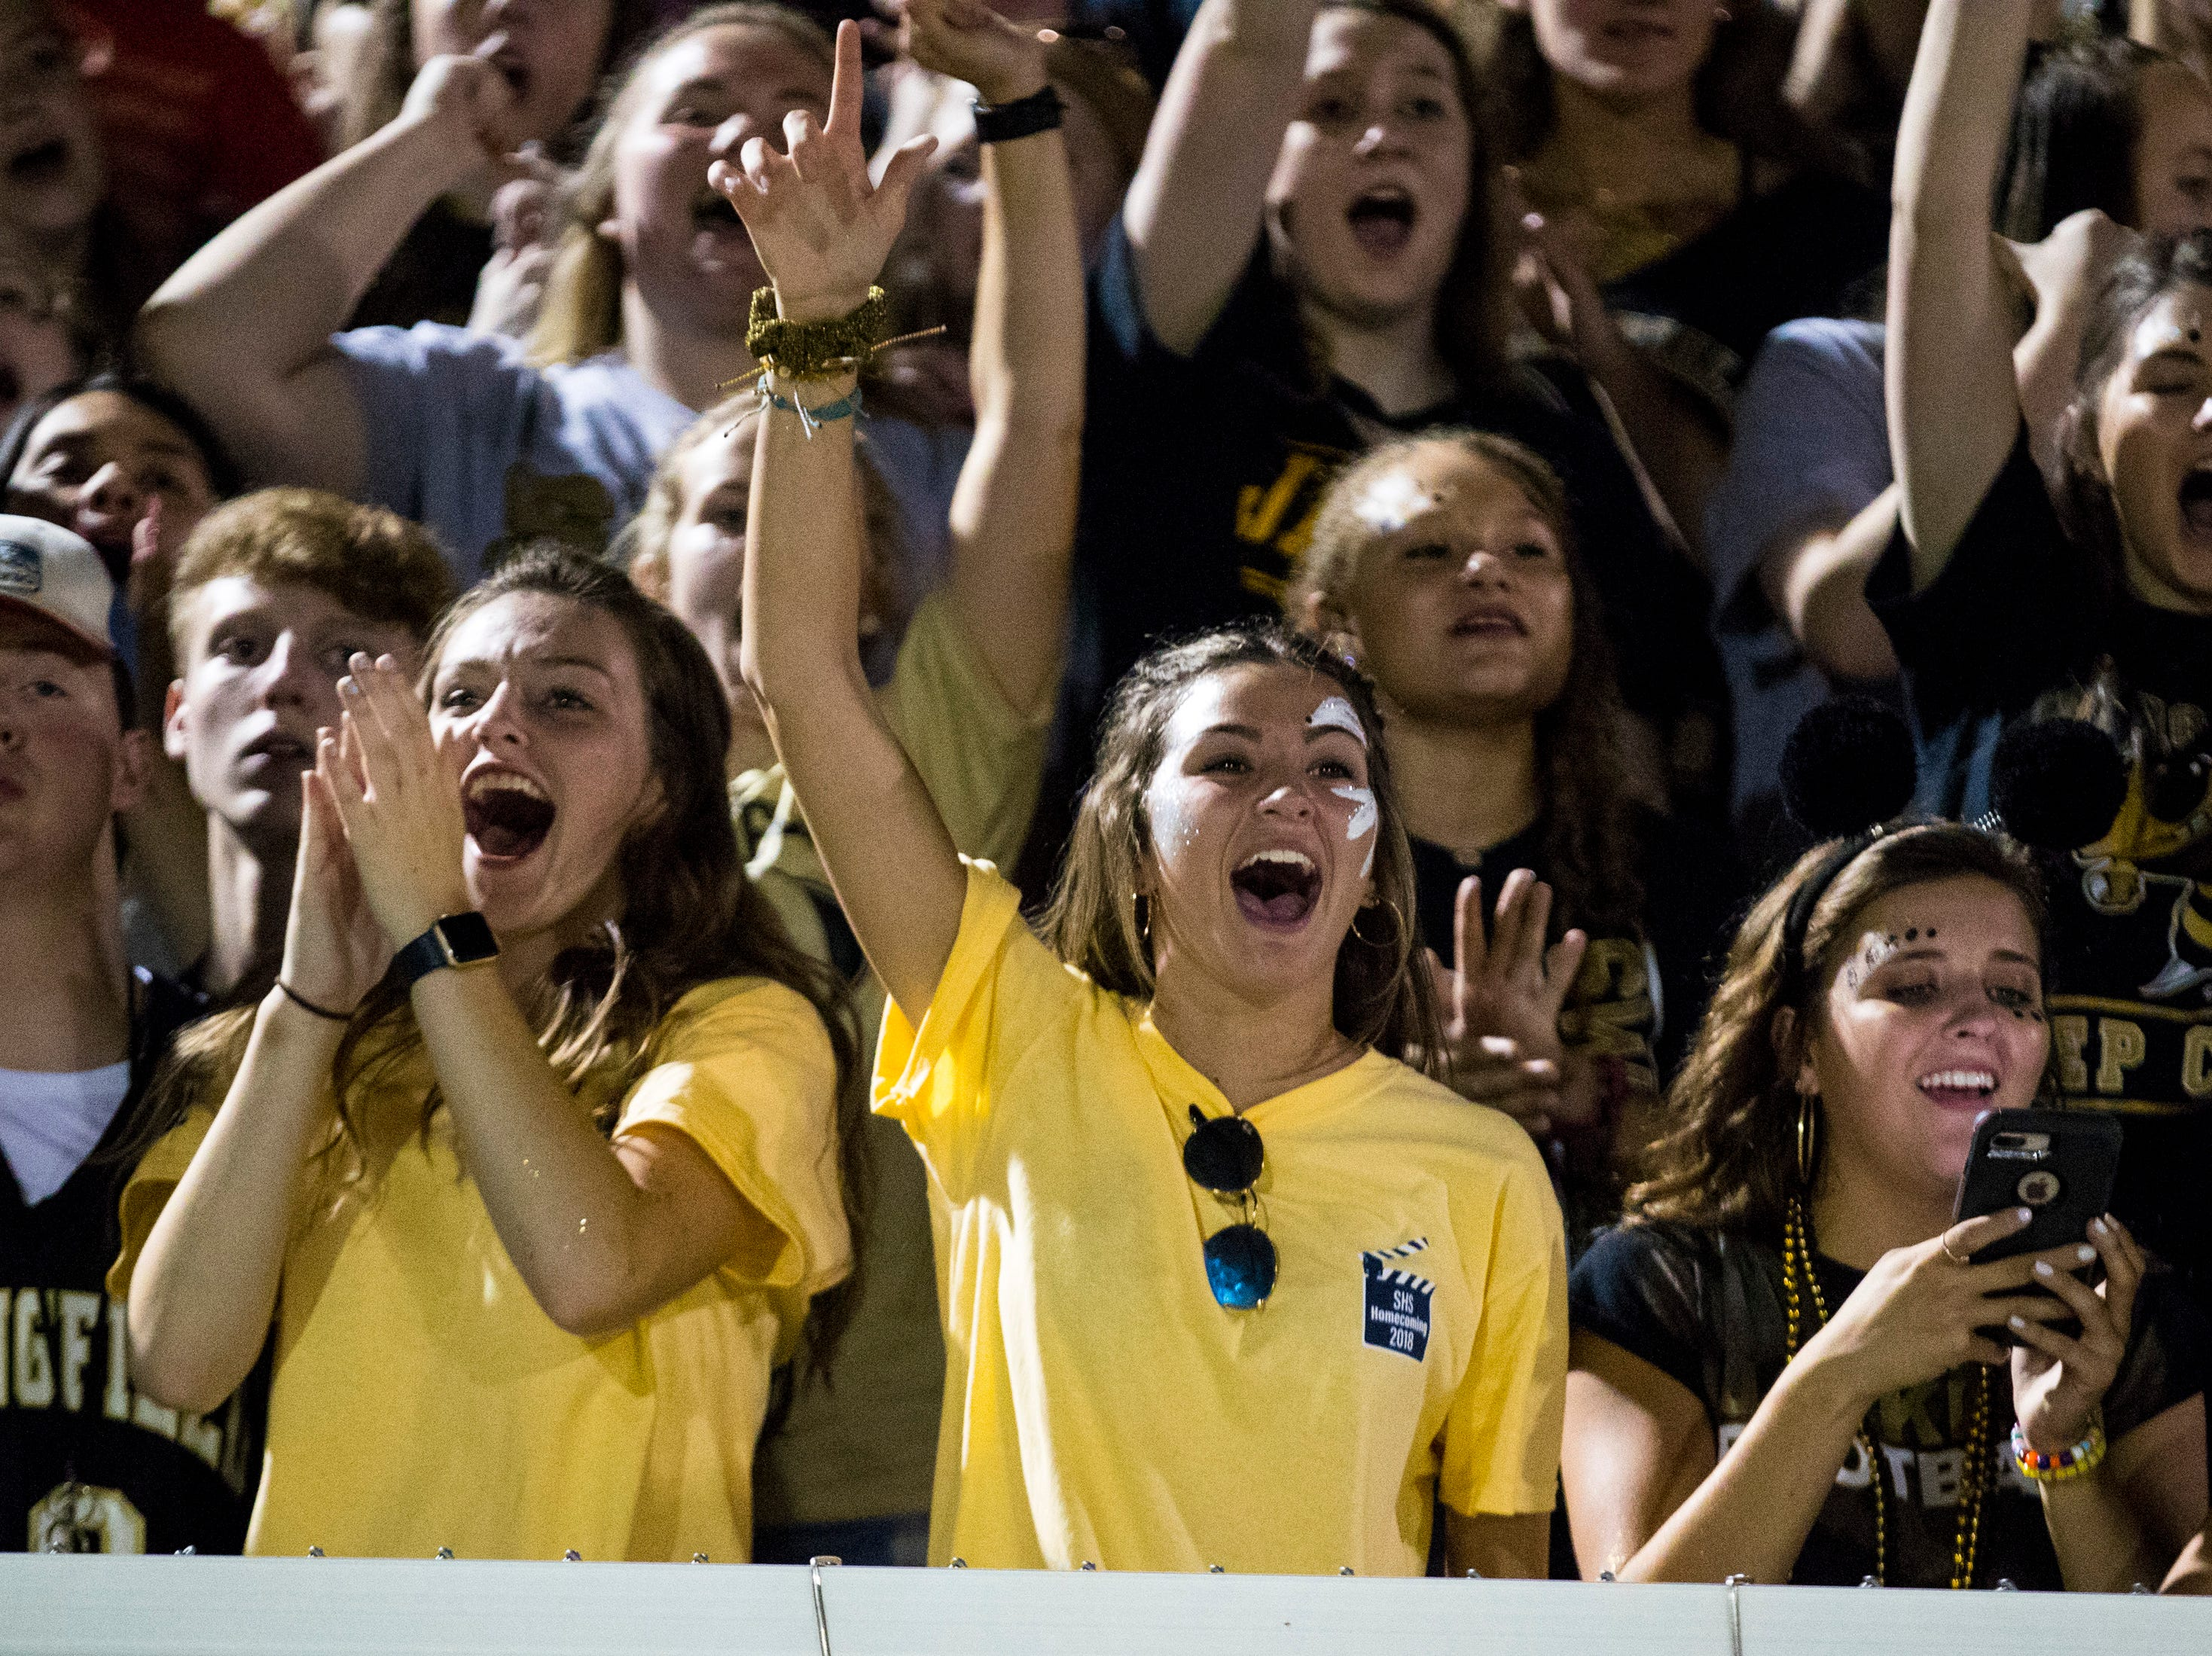 Springfield's student section cheers during Springfield's game against White House at Springfield High School in Springfield on Friday, Sept. 14, 2018.